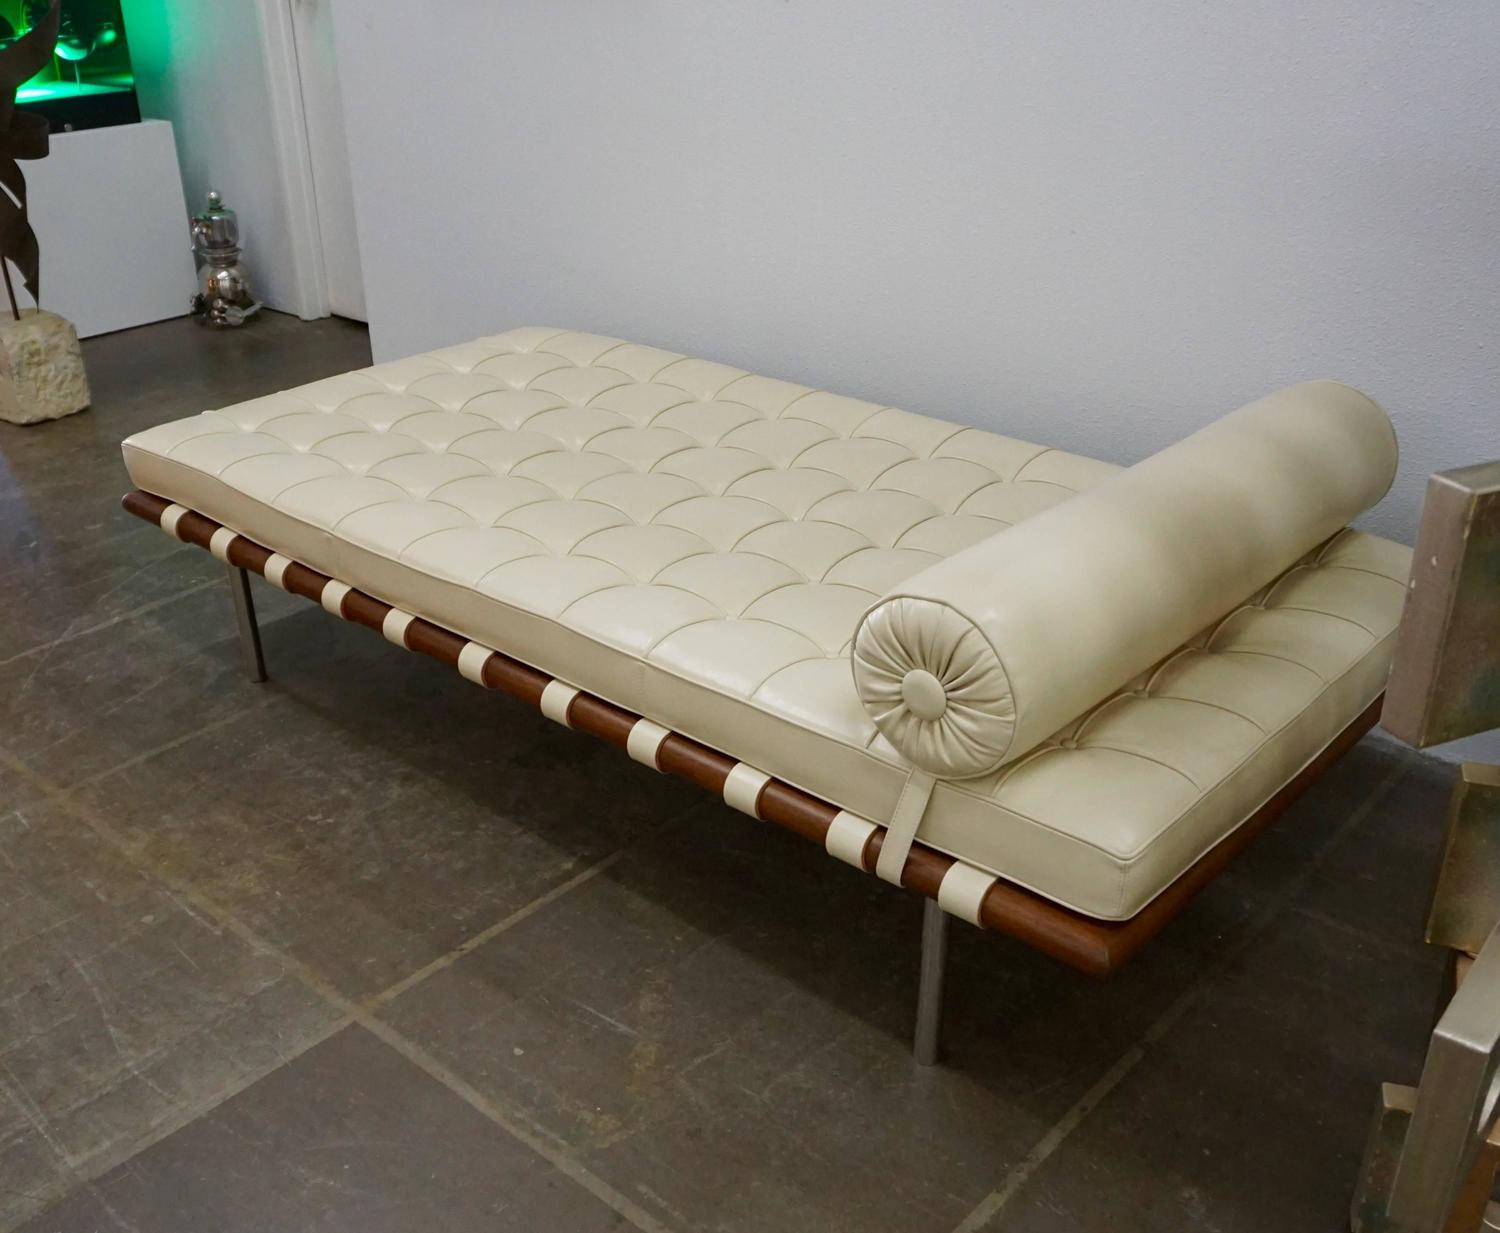 knoll barcelona daybed by ludwig mies van der rohe at 1stdibs. Black Bedroom Furniture Sets. Home Design Ideas